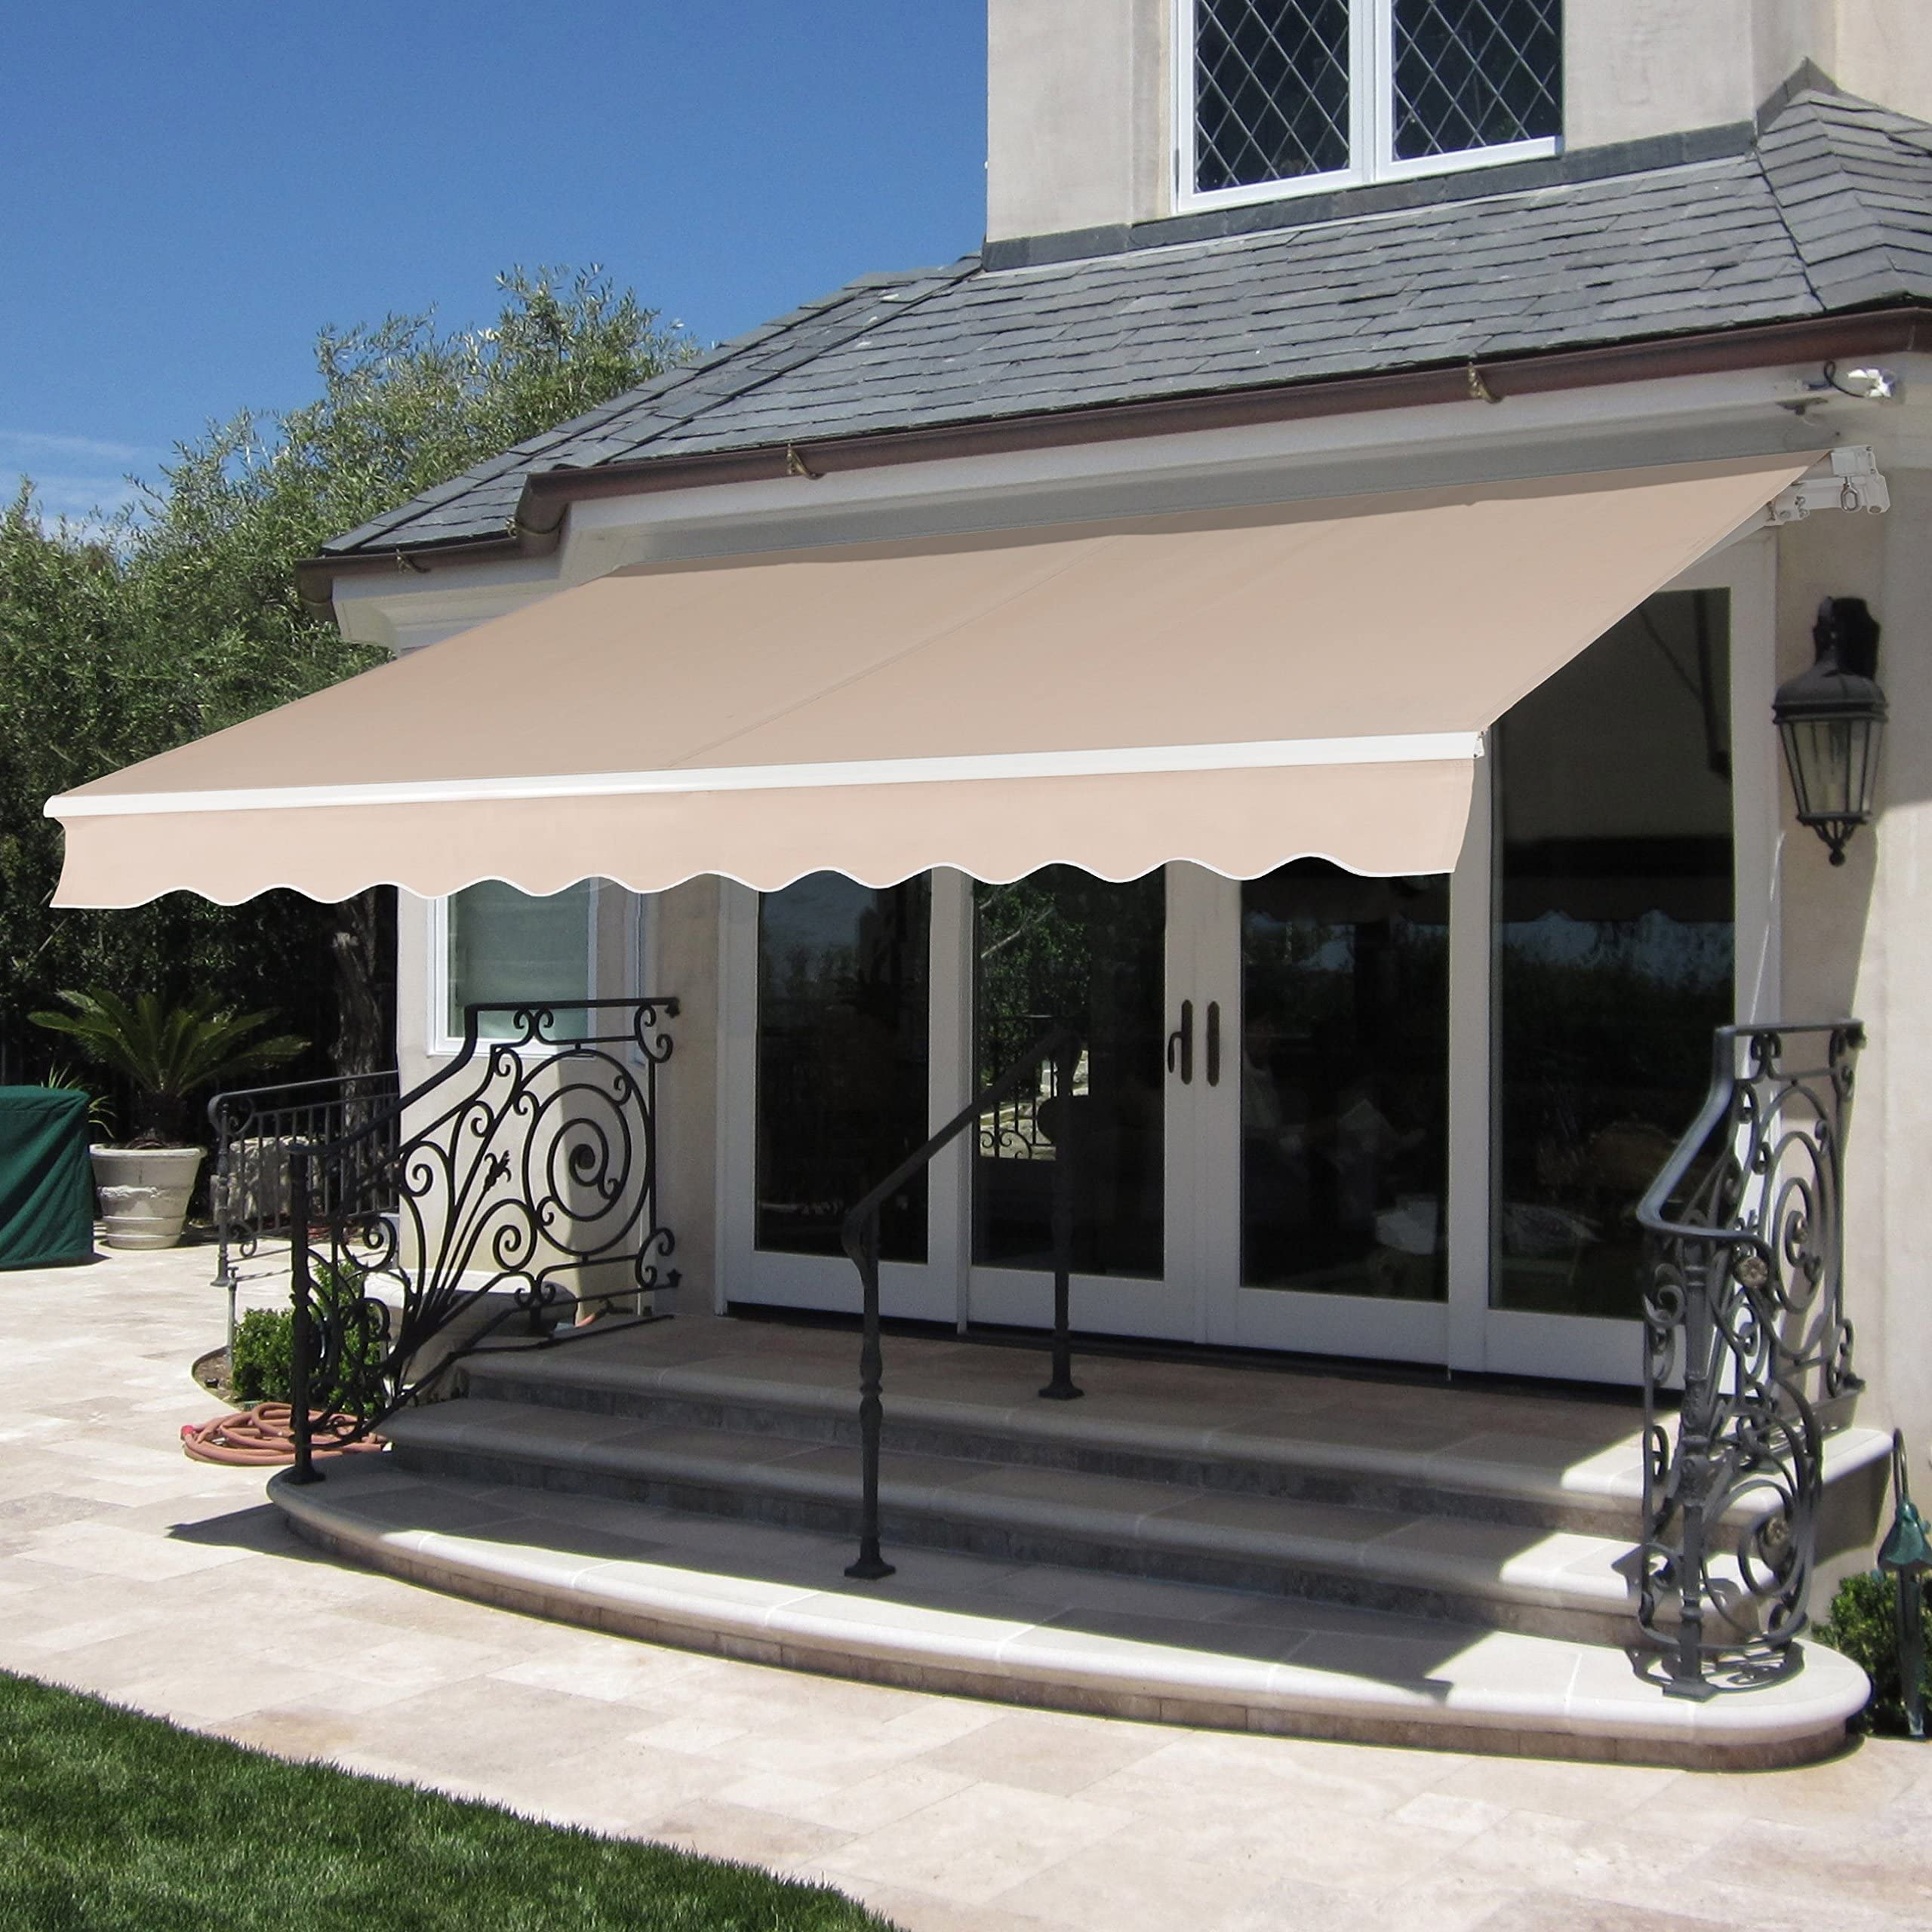 Best Choice Products Patio Manual Patio 8.2u0027x6.5u0027 Retractable Deck Awning Sunshade  sc 1 st  Amazon.com : deck canopy awning - memphite.com